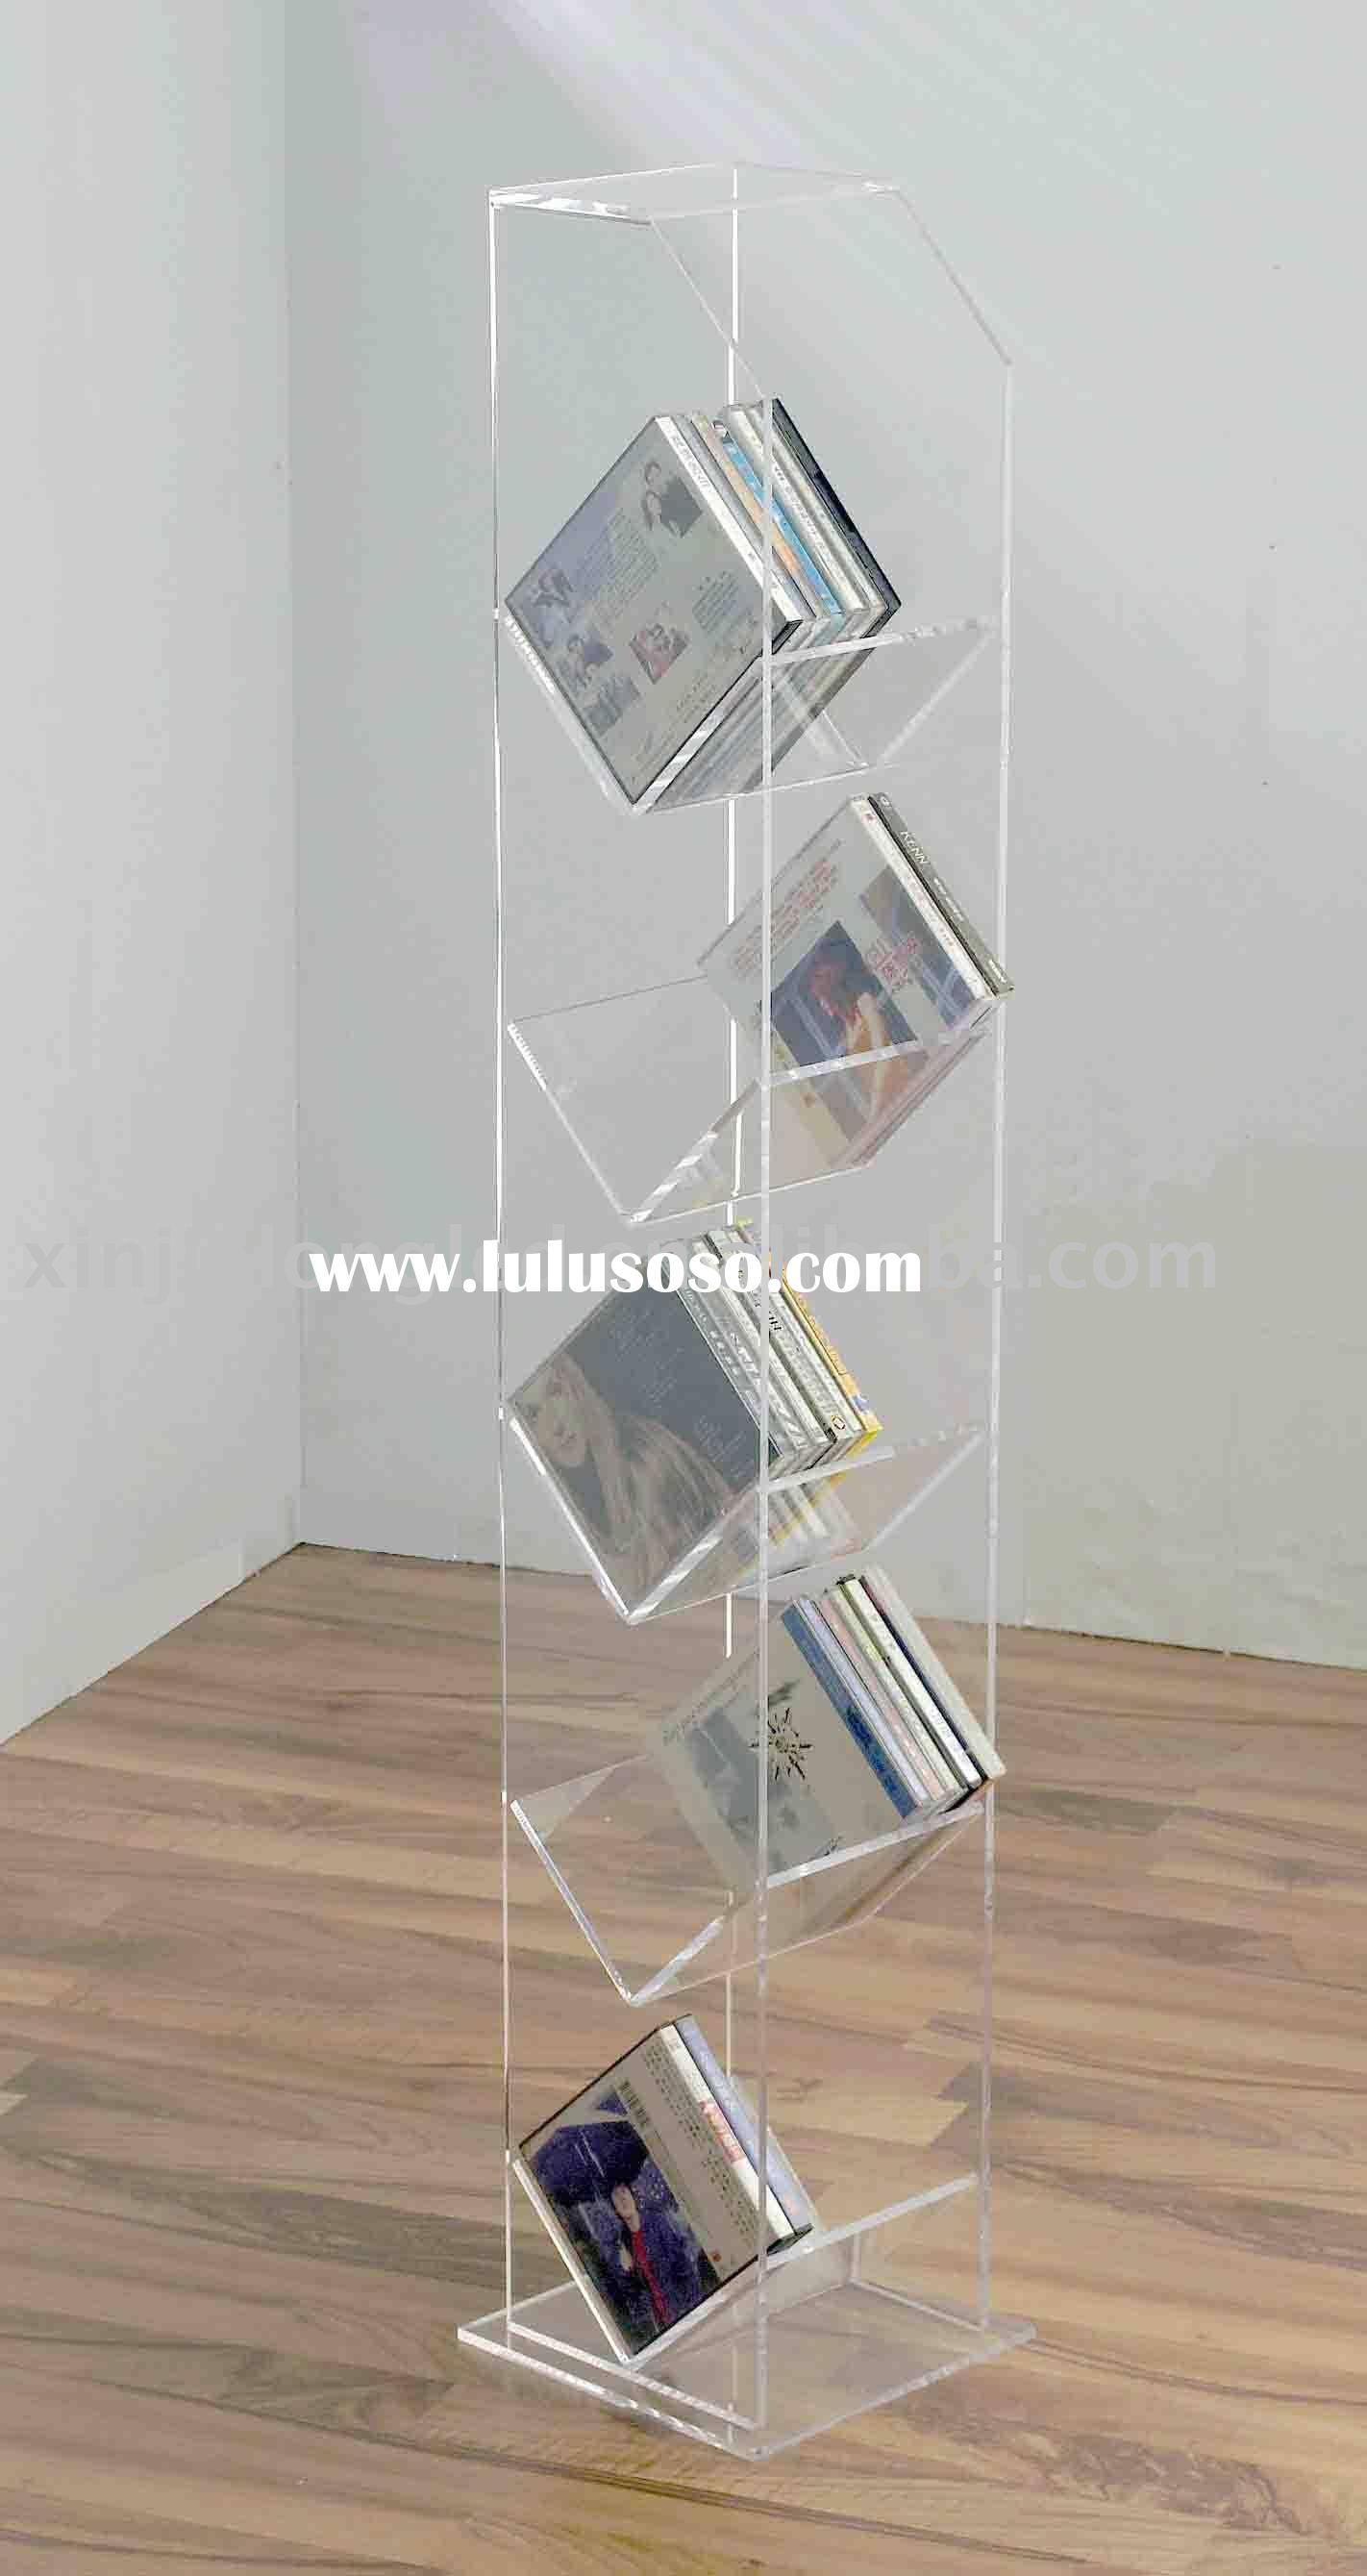 Acrylic CD rack,Acrylic CD holder,Acrylic CD display,Acrylic CD stand,Acrylic CD display stand,acryl